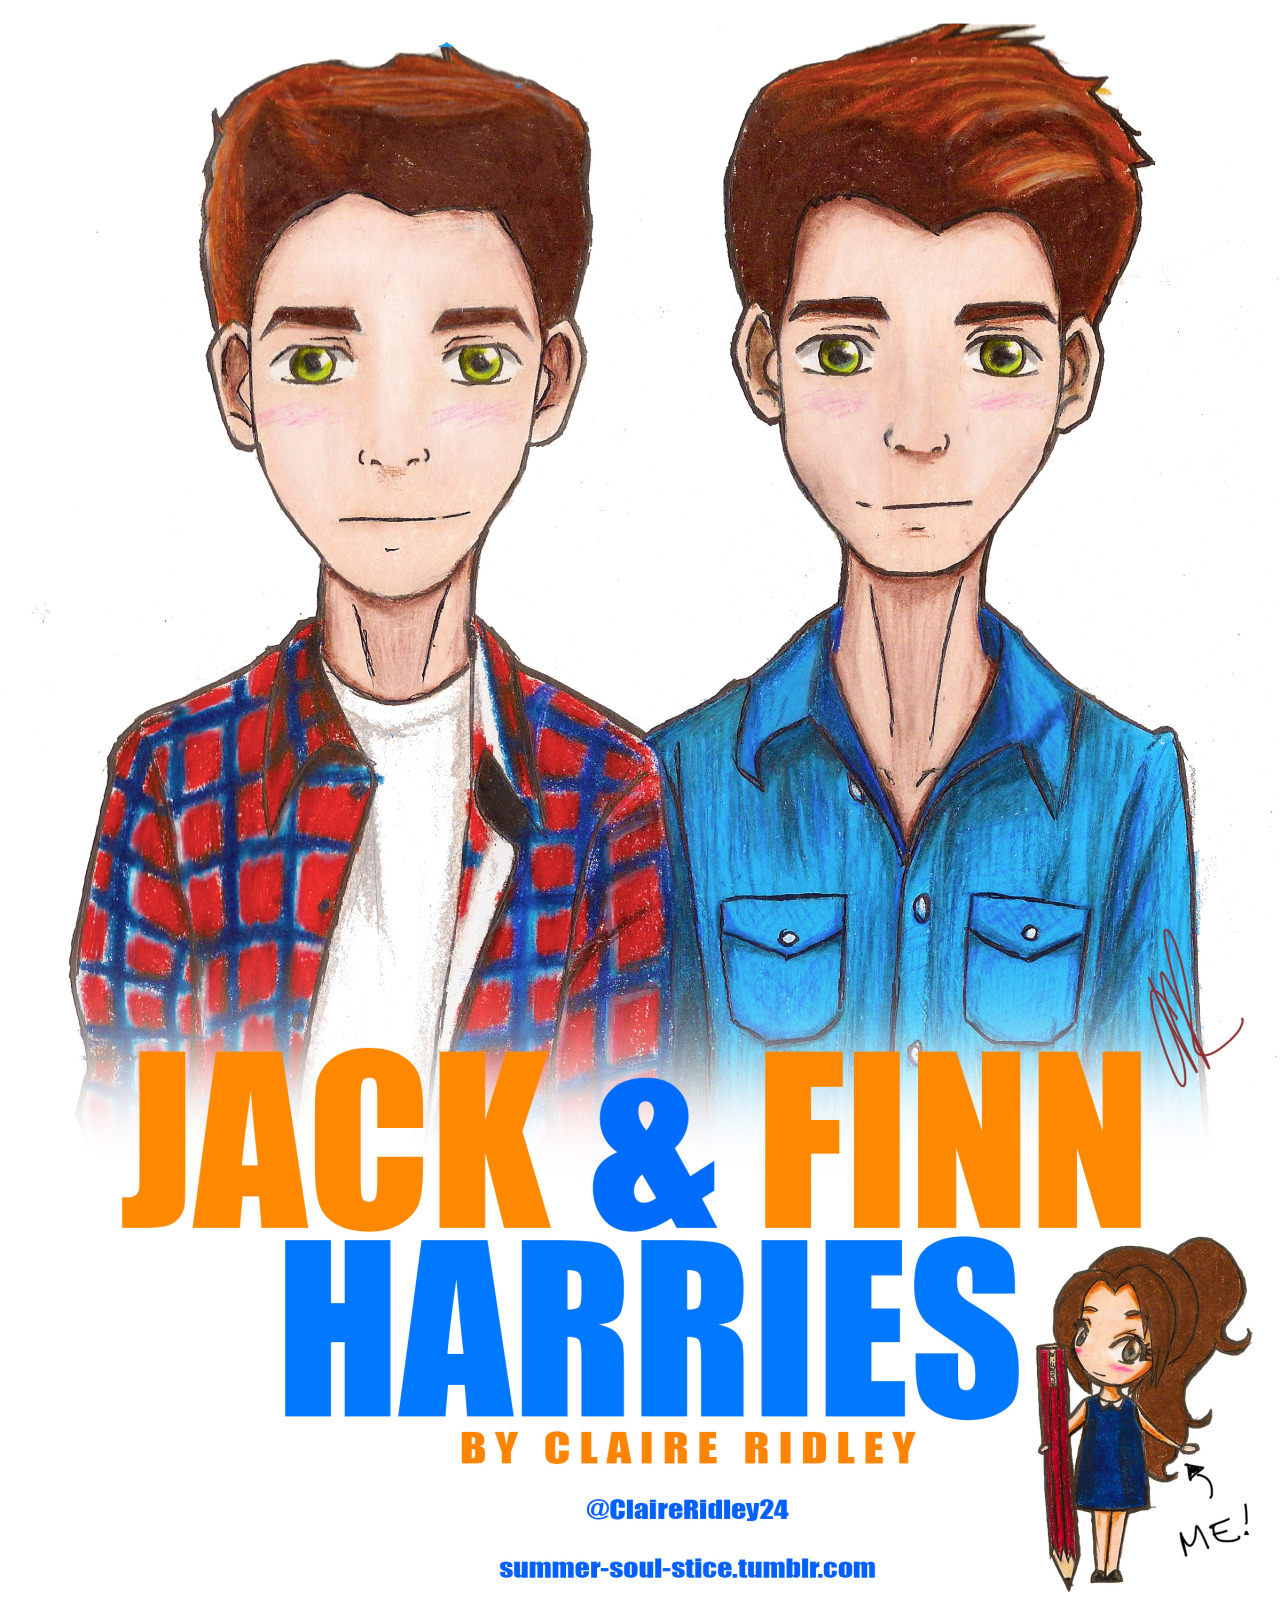 summer-soul-stice:  My drawing of Jack & Finn Harries! Hope you like it :) It is based on a real photo of them :) I'm not 100% happy with it, more like 75% but I tried.. If you decide you want to steal my drawing…